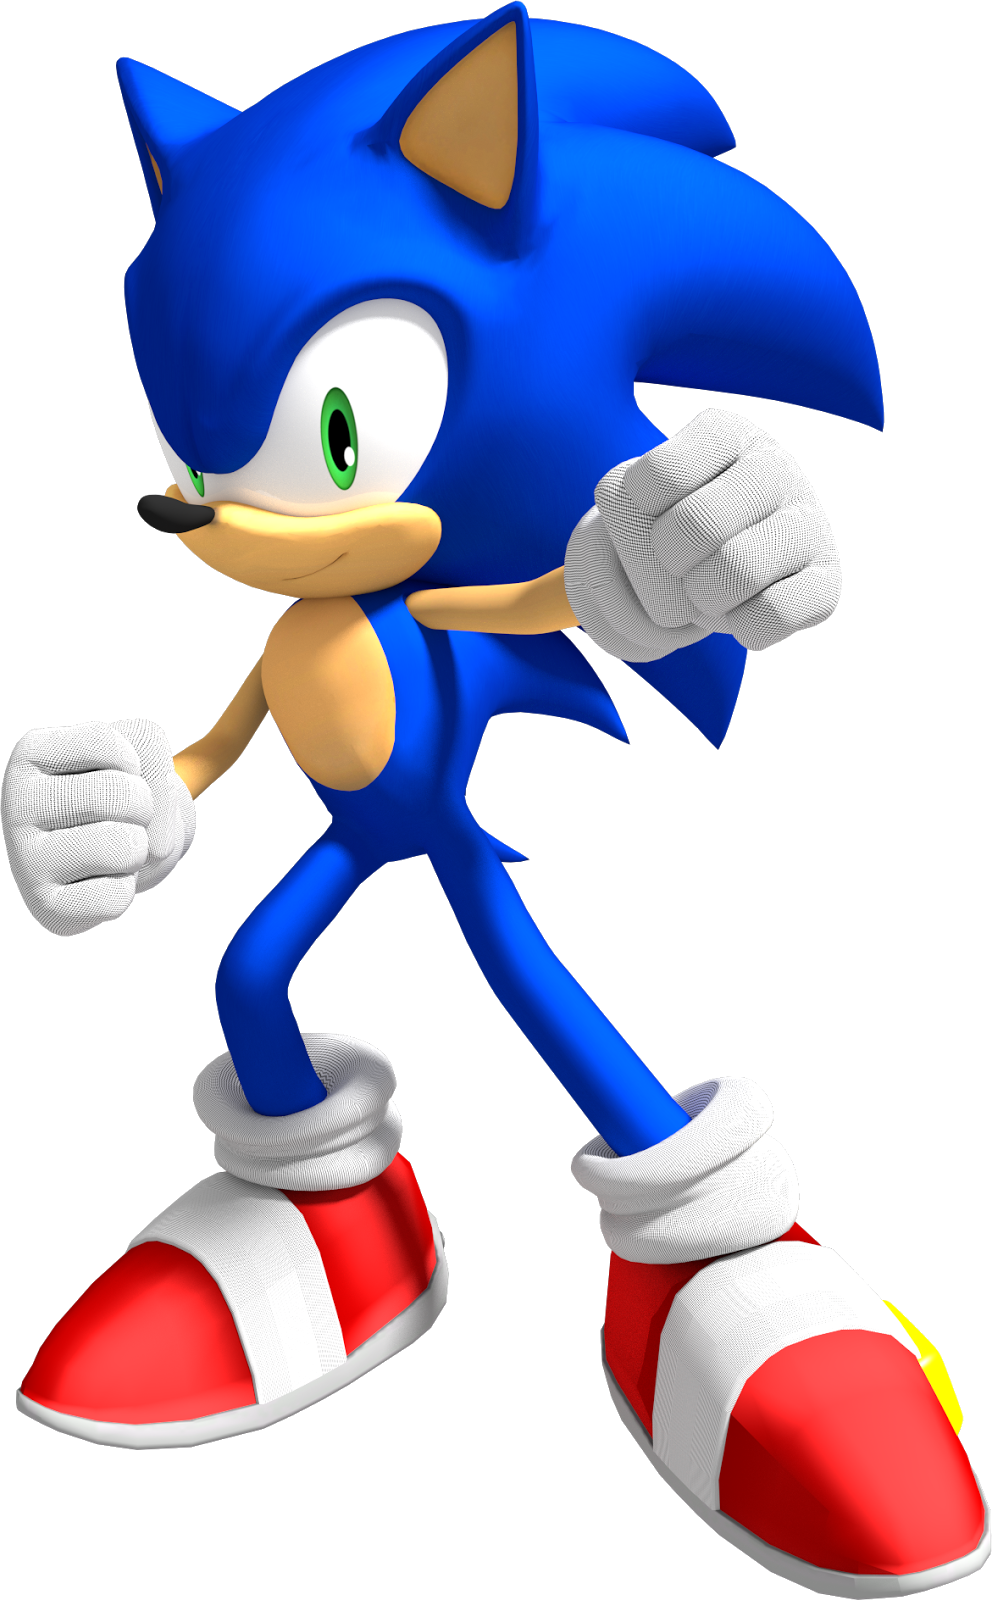 It's just a graphic of Smart Sonic the Hedgehog Images